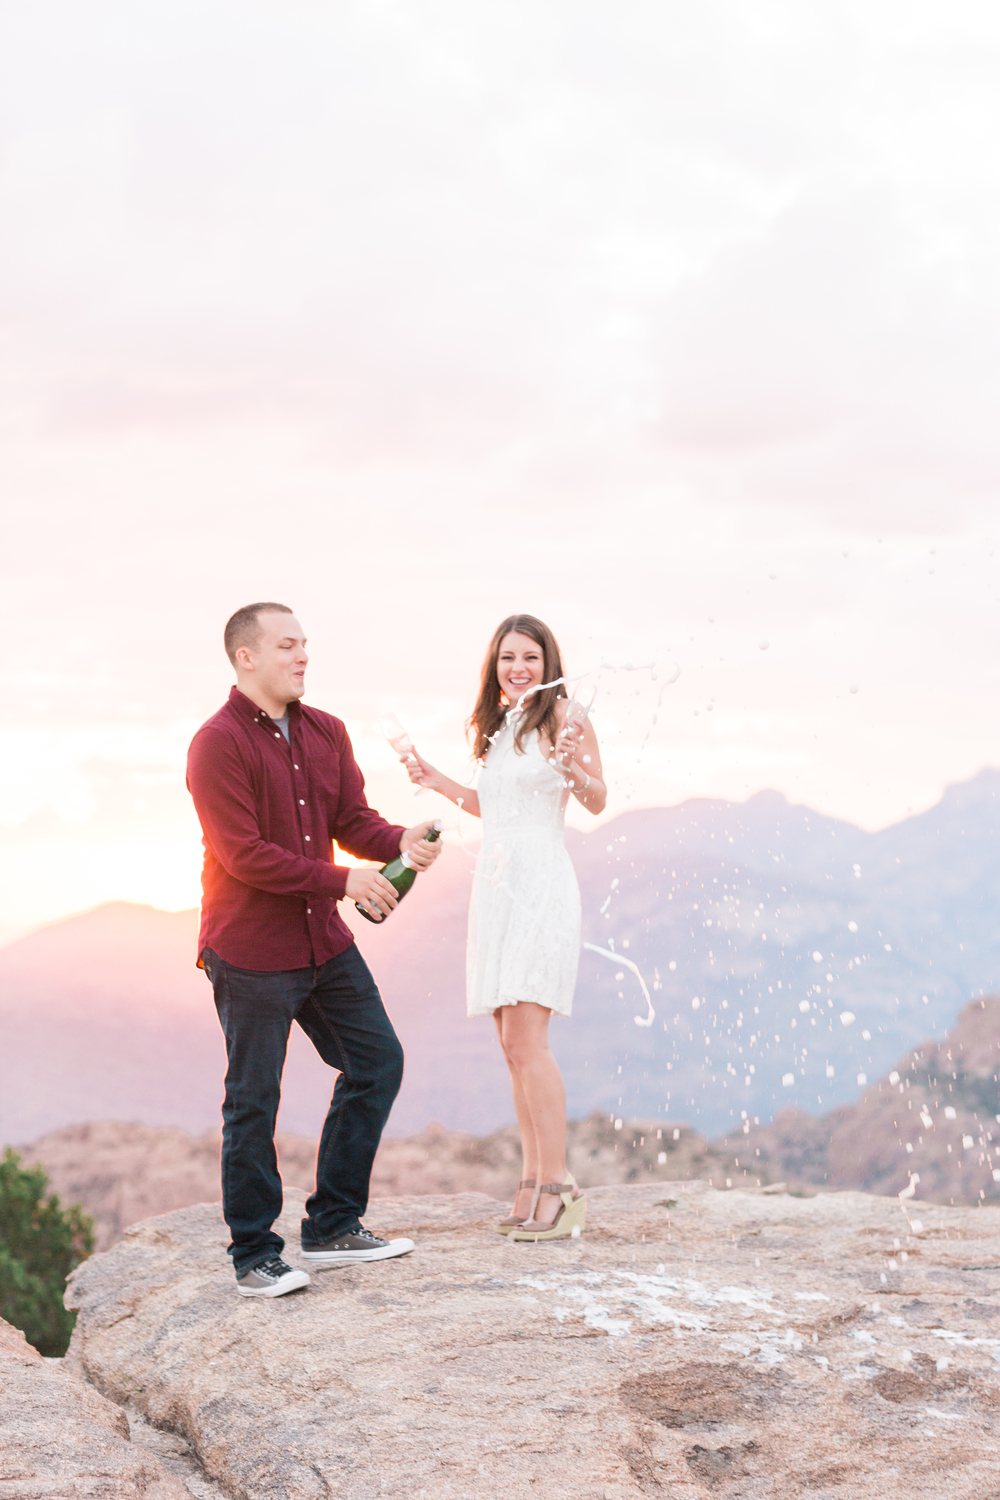 Betsy and John | Tucson Wedding Photographers | See more at BetsyandJohn.com